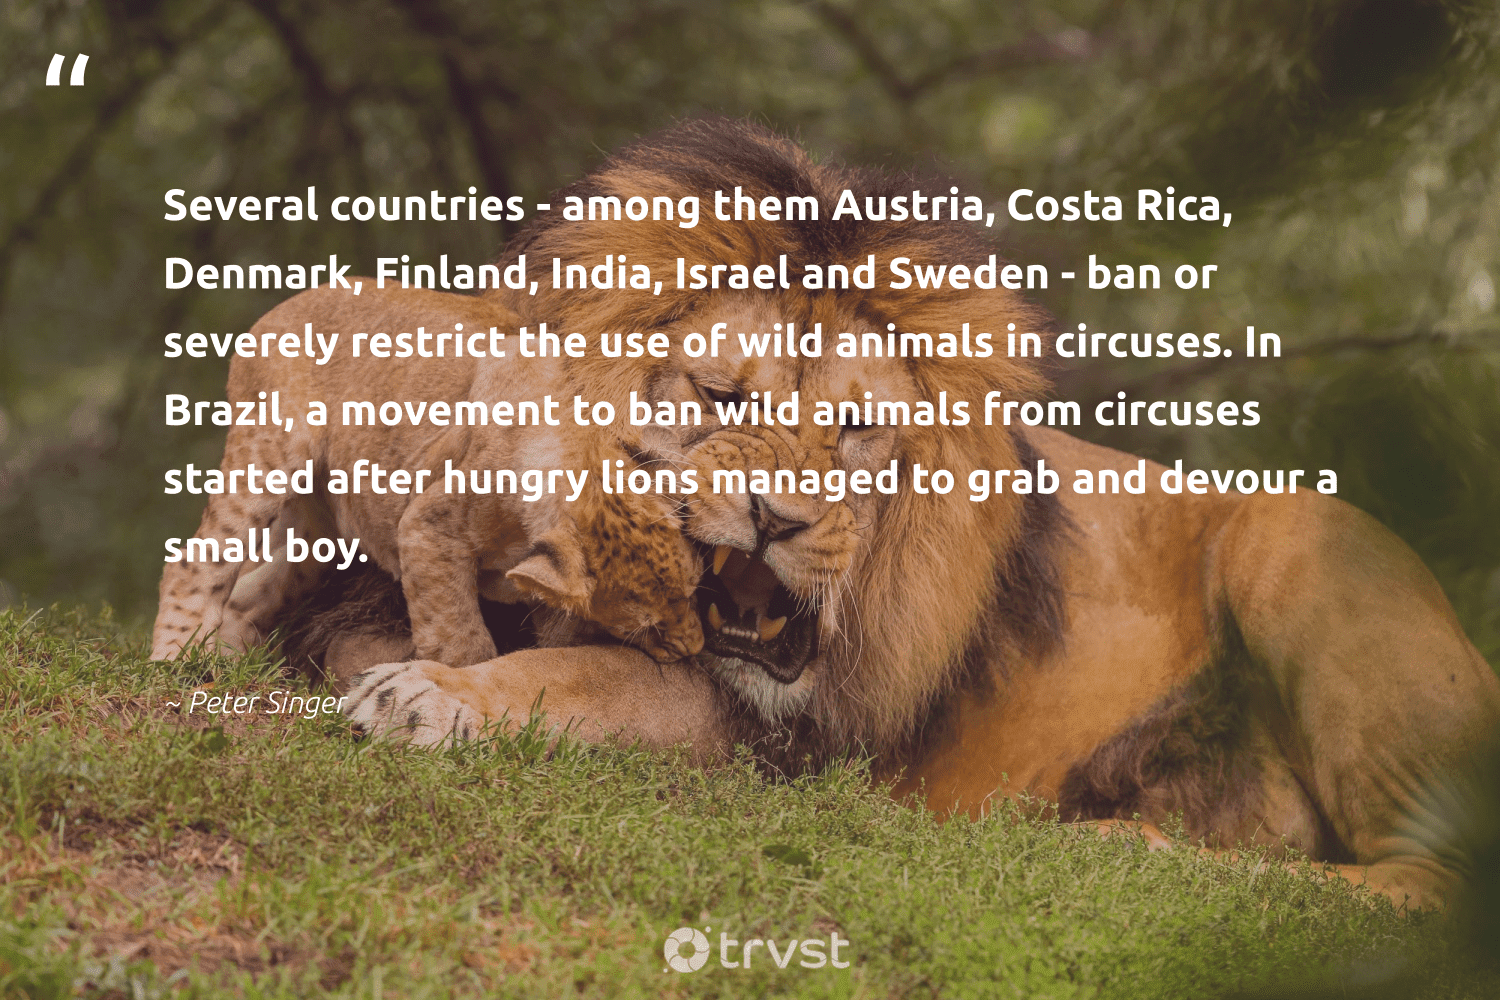 """""""Several countries - among them Austria, Costa Rica, Denmark, Finland, India, Israel and Sweden - ban or severely restrict the use of wild animals in circuses. In Brazil, a movement to ban wild animals from circuses started after hungry lions managed to grab and devour a small boy.""""  - Peter Singer #trvst #quotes #costarica #india #animals #hungry #wild #lions #wildlife #nature #geology #dosomething"""